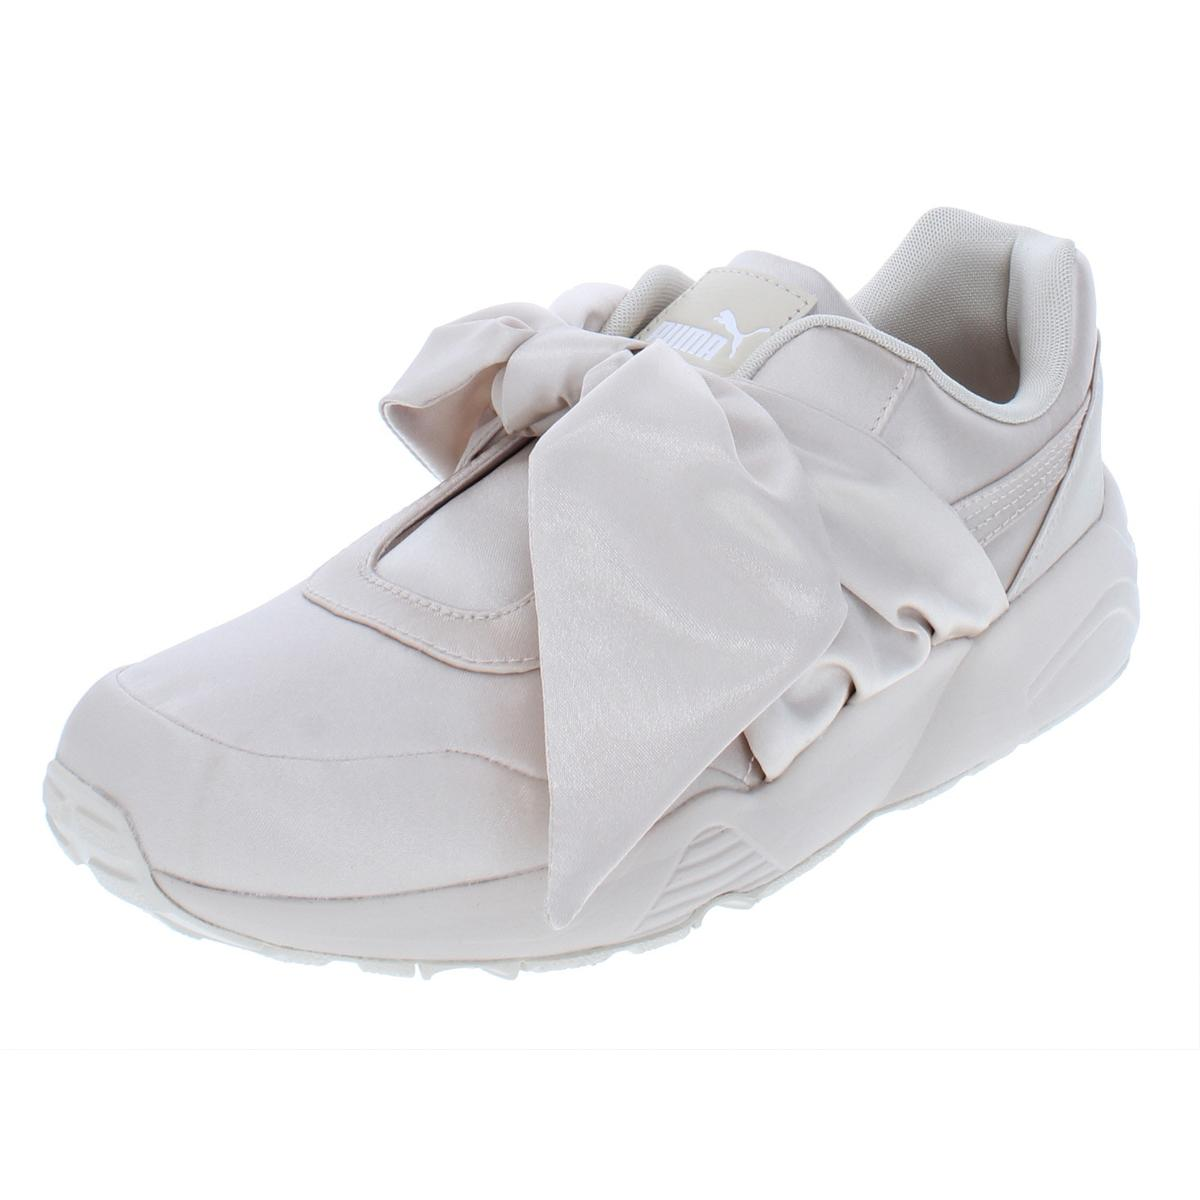 Fenty Puma by Rihanna Womens Bow Sneaker Satin Fashion Sneakers ... 8c1e0b469